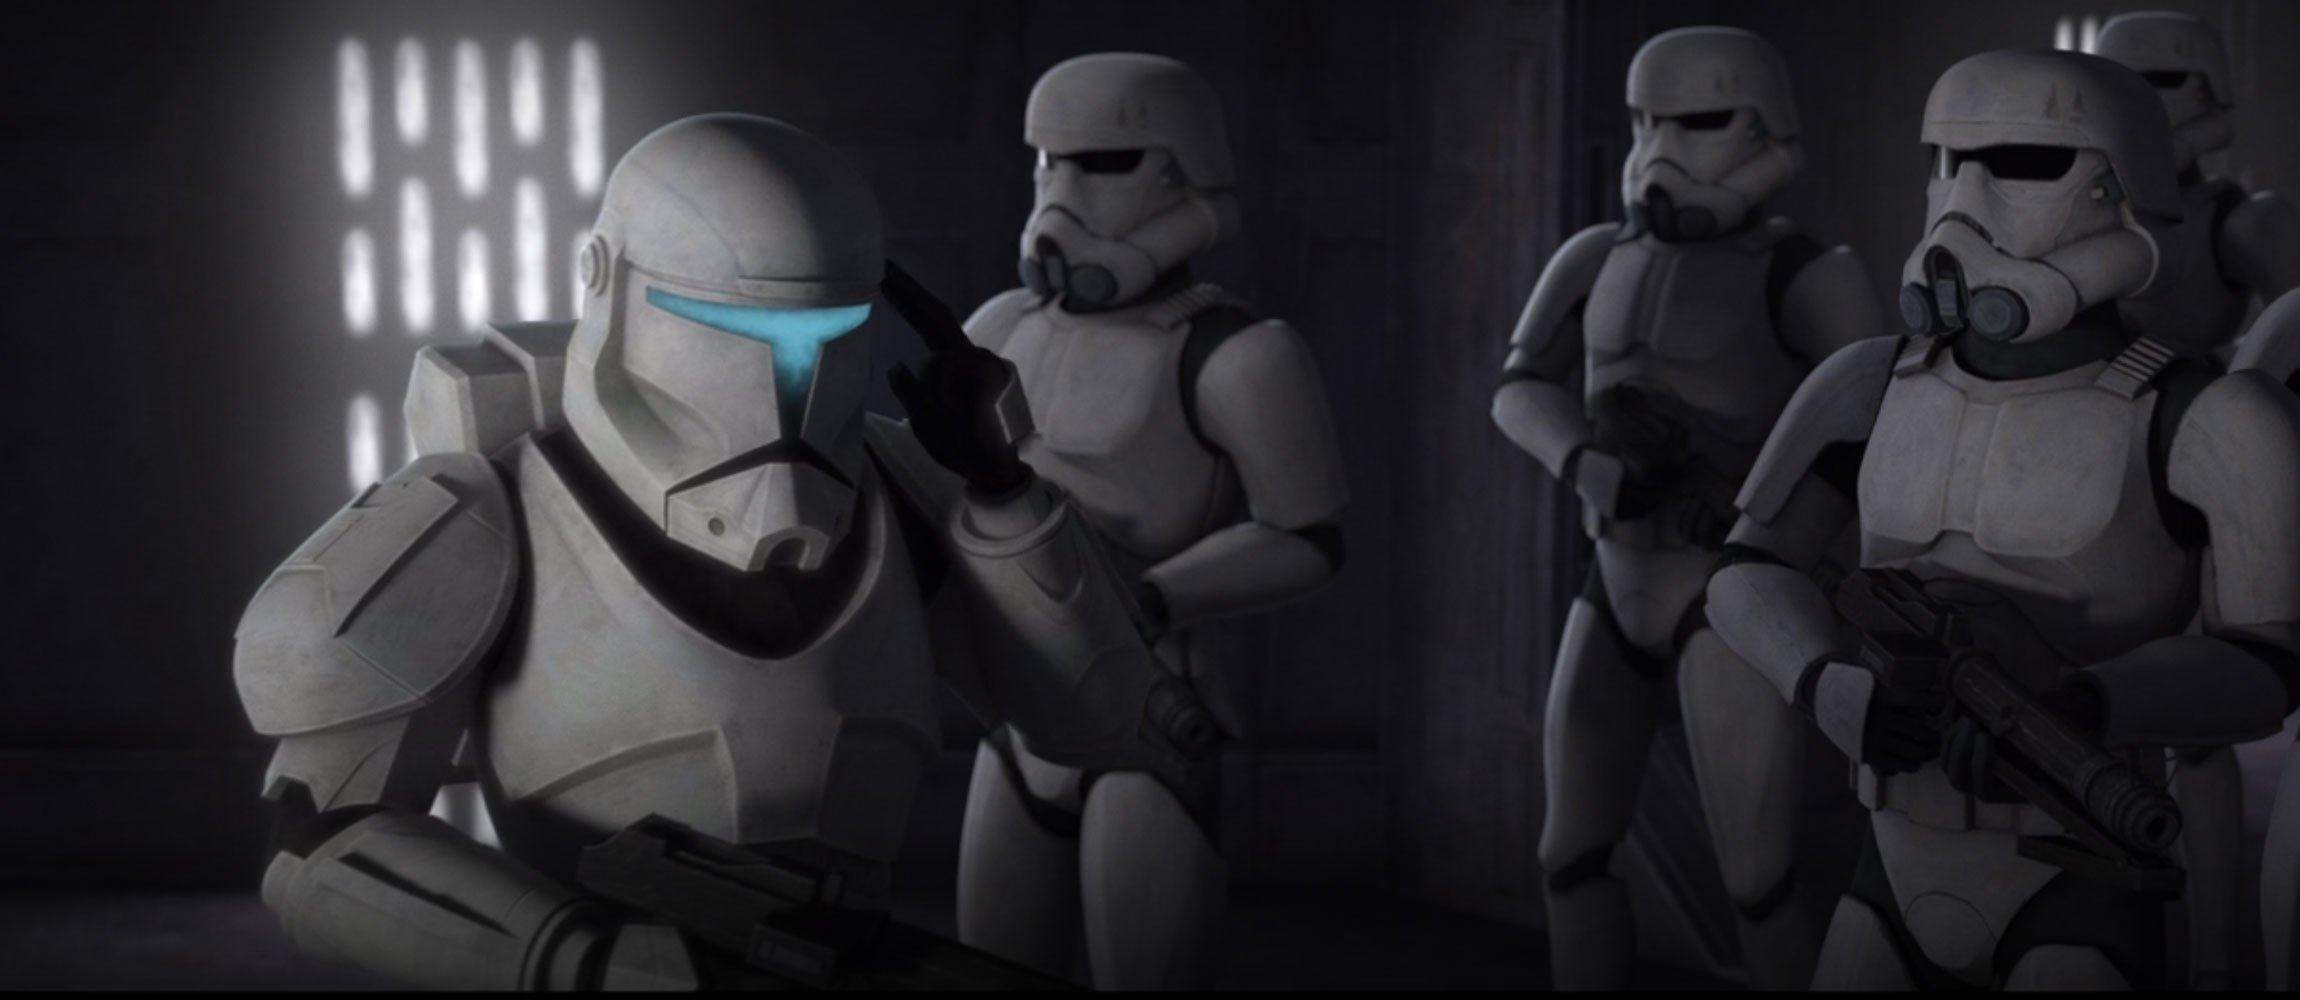 Clone commando leading stormtroopers in The Bad Batch